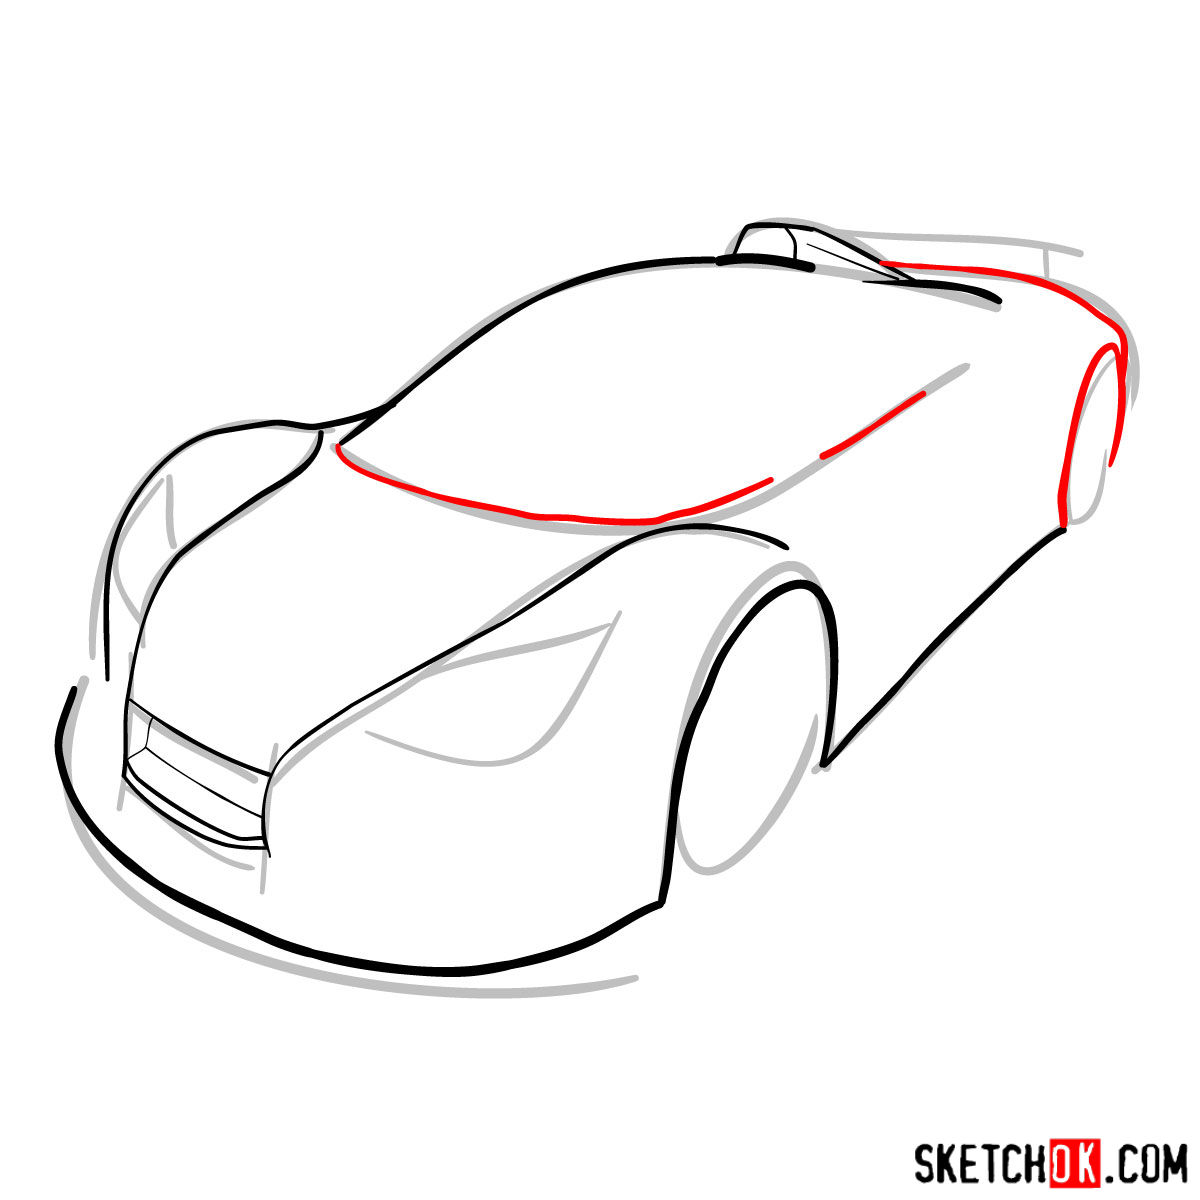 How to draw Gumpert Apolo Sport 2012 - step 05